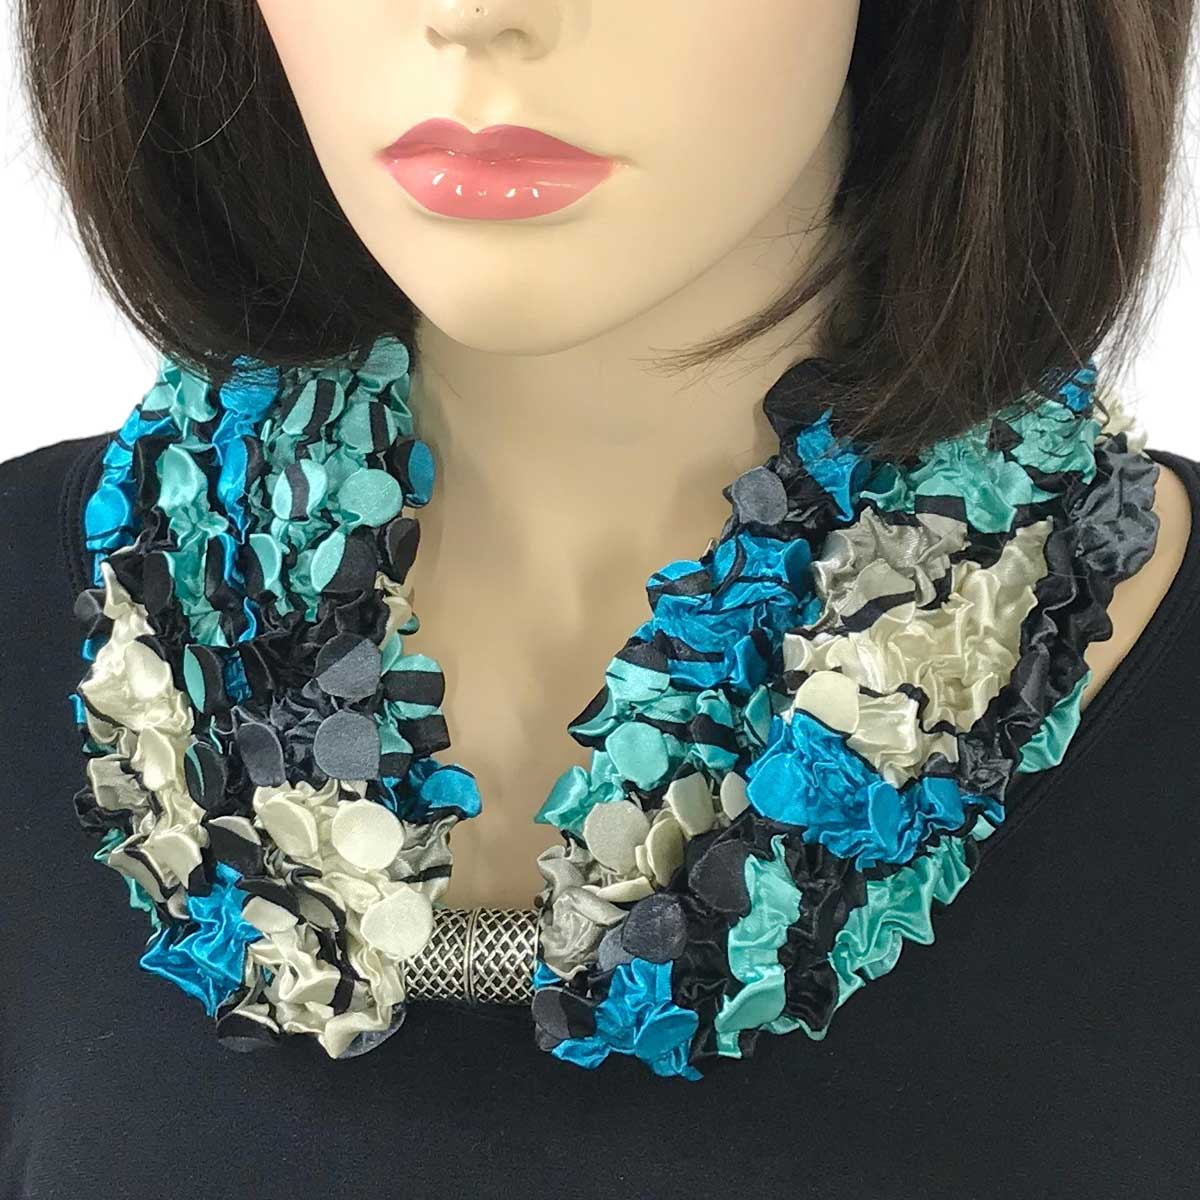 Magnetic Clasp Scarves - Coin + Bubble Satin  - #12 TURQUOISE POP ART Coin Magnetic Clasp Scarf